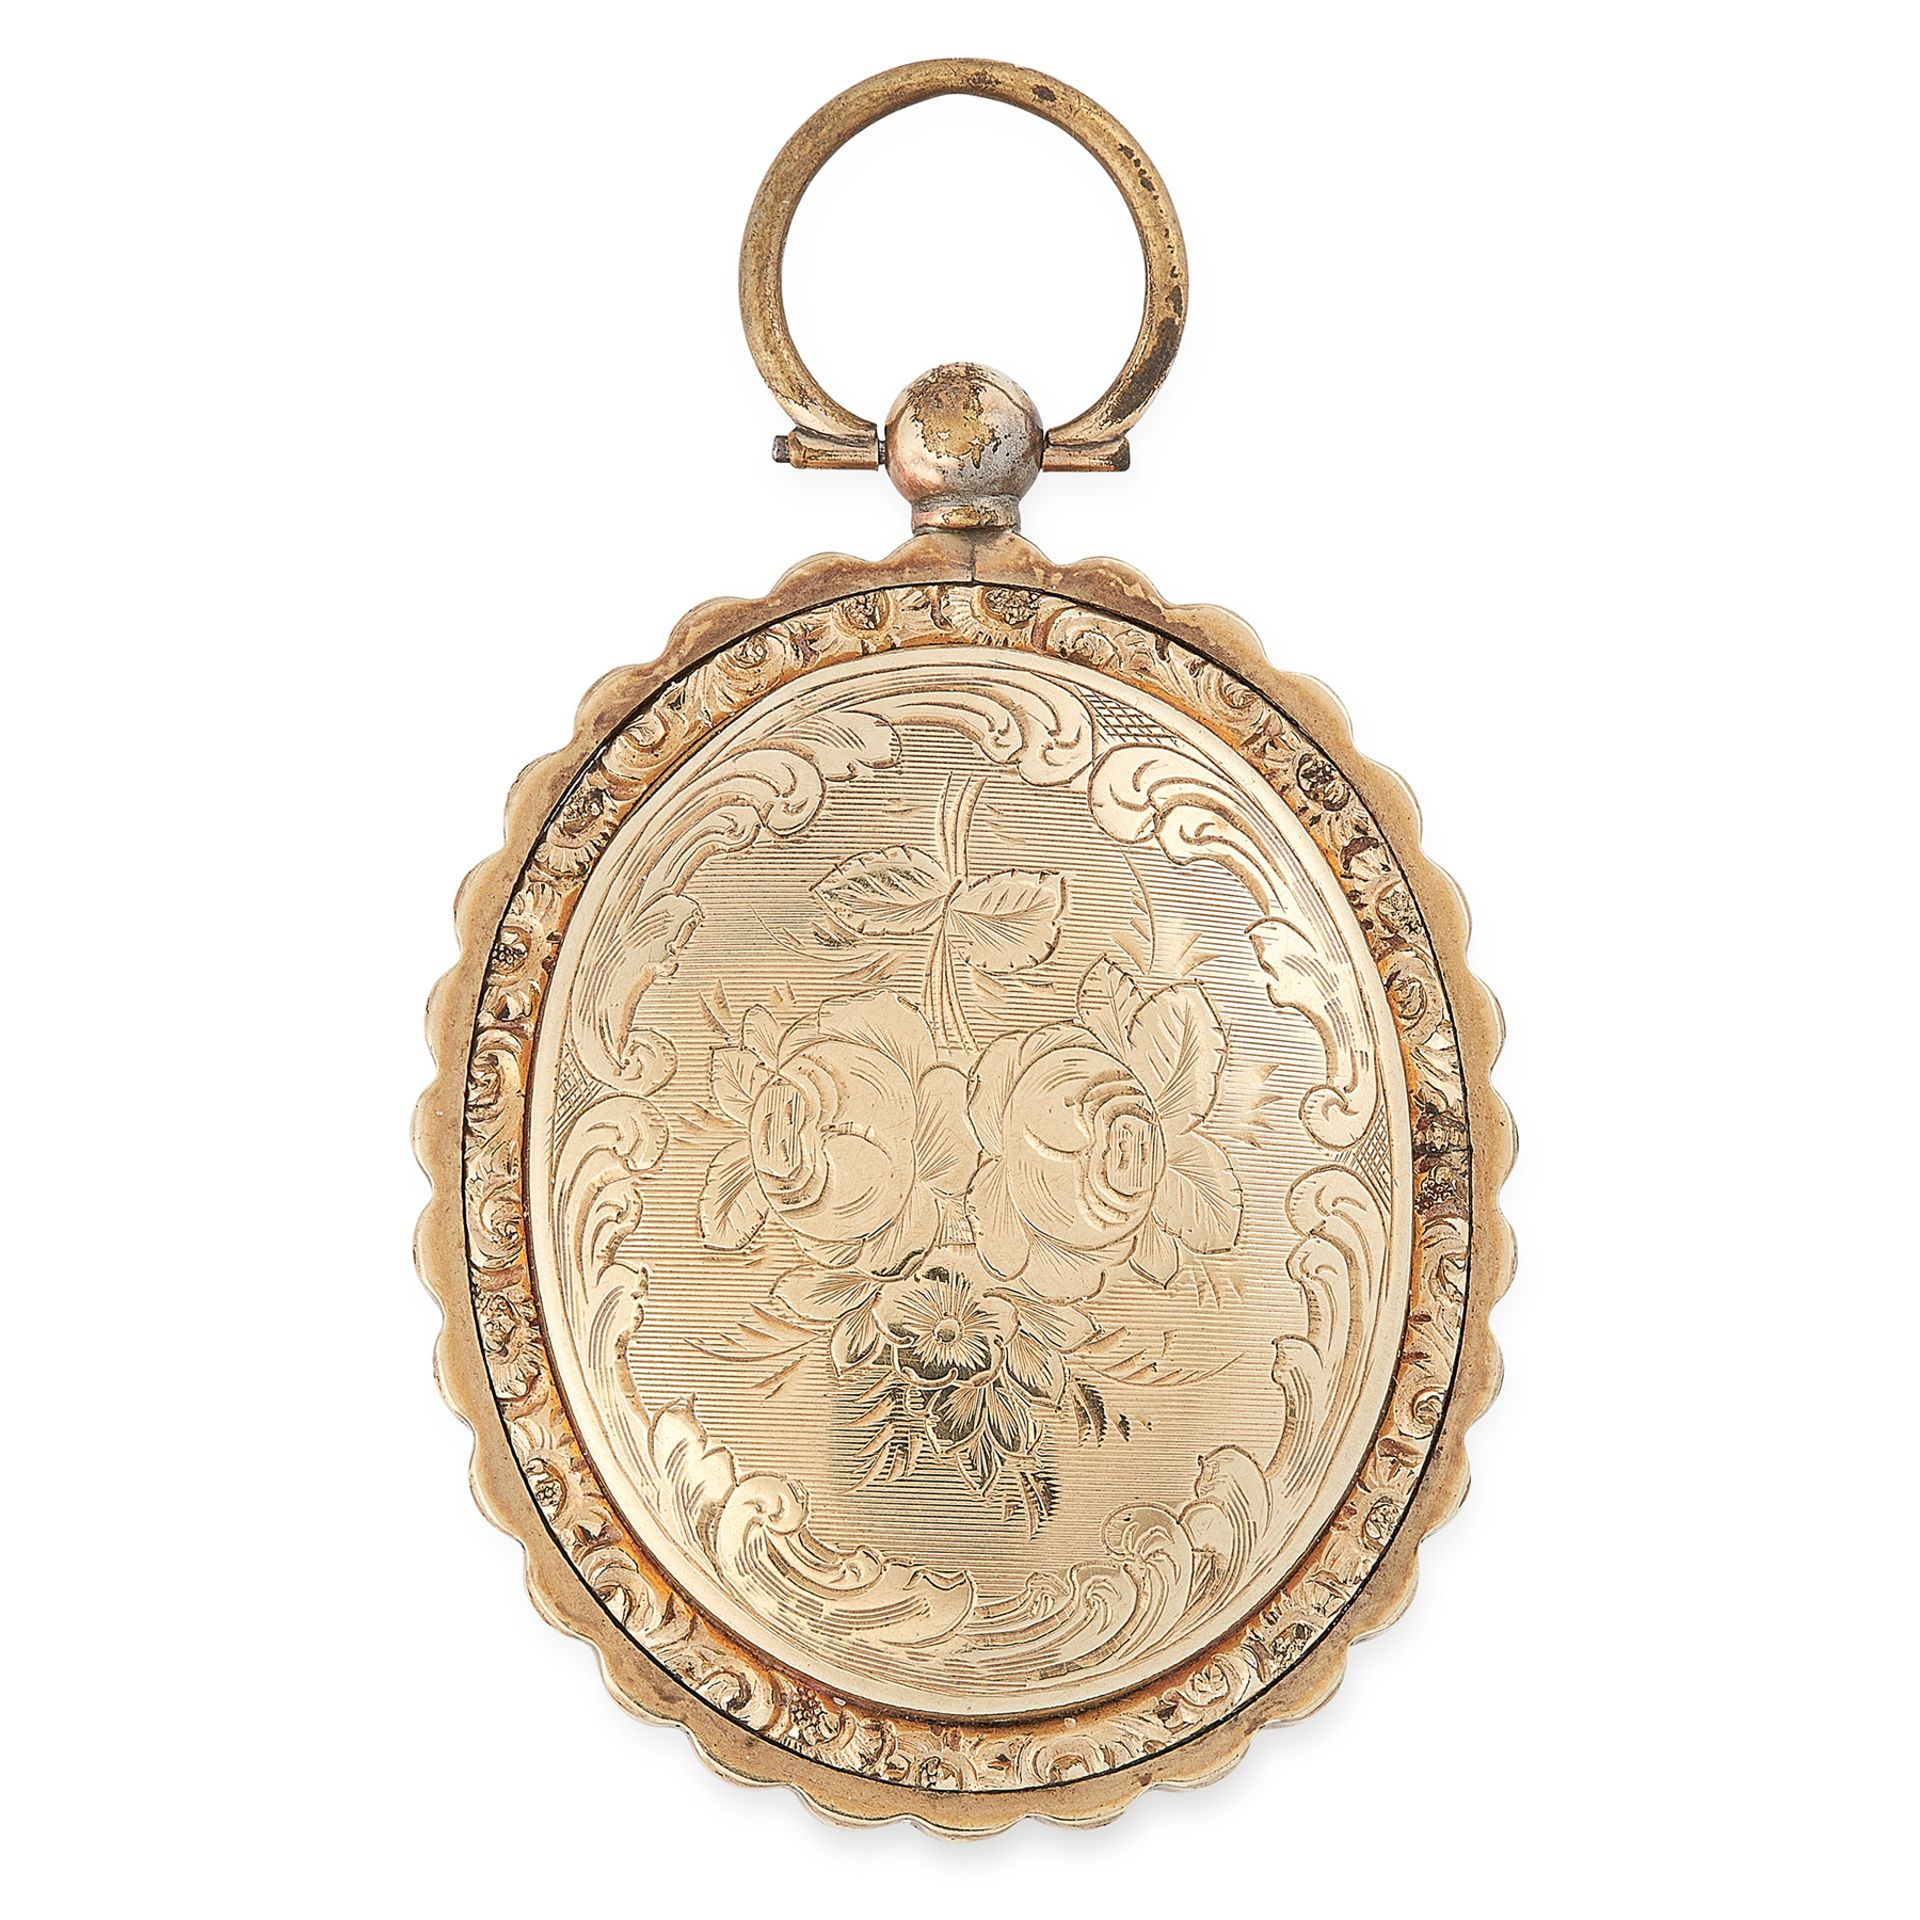 Los 19 - AN ANTIQUE HAIRWORK AND PORTRAIT MINIATURE MOURNING LOCKET, 19TH CENTURY the oval body with